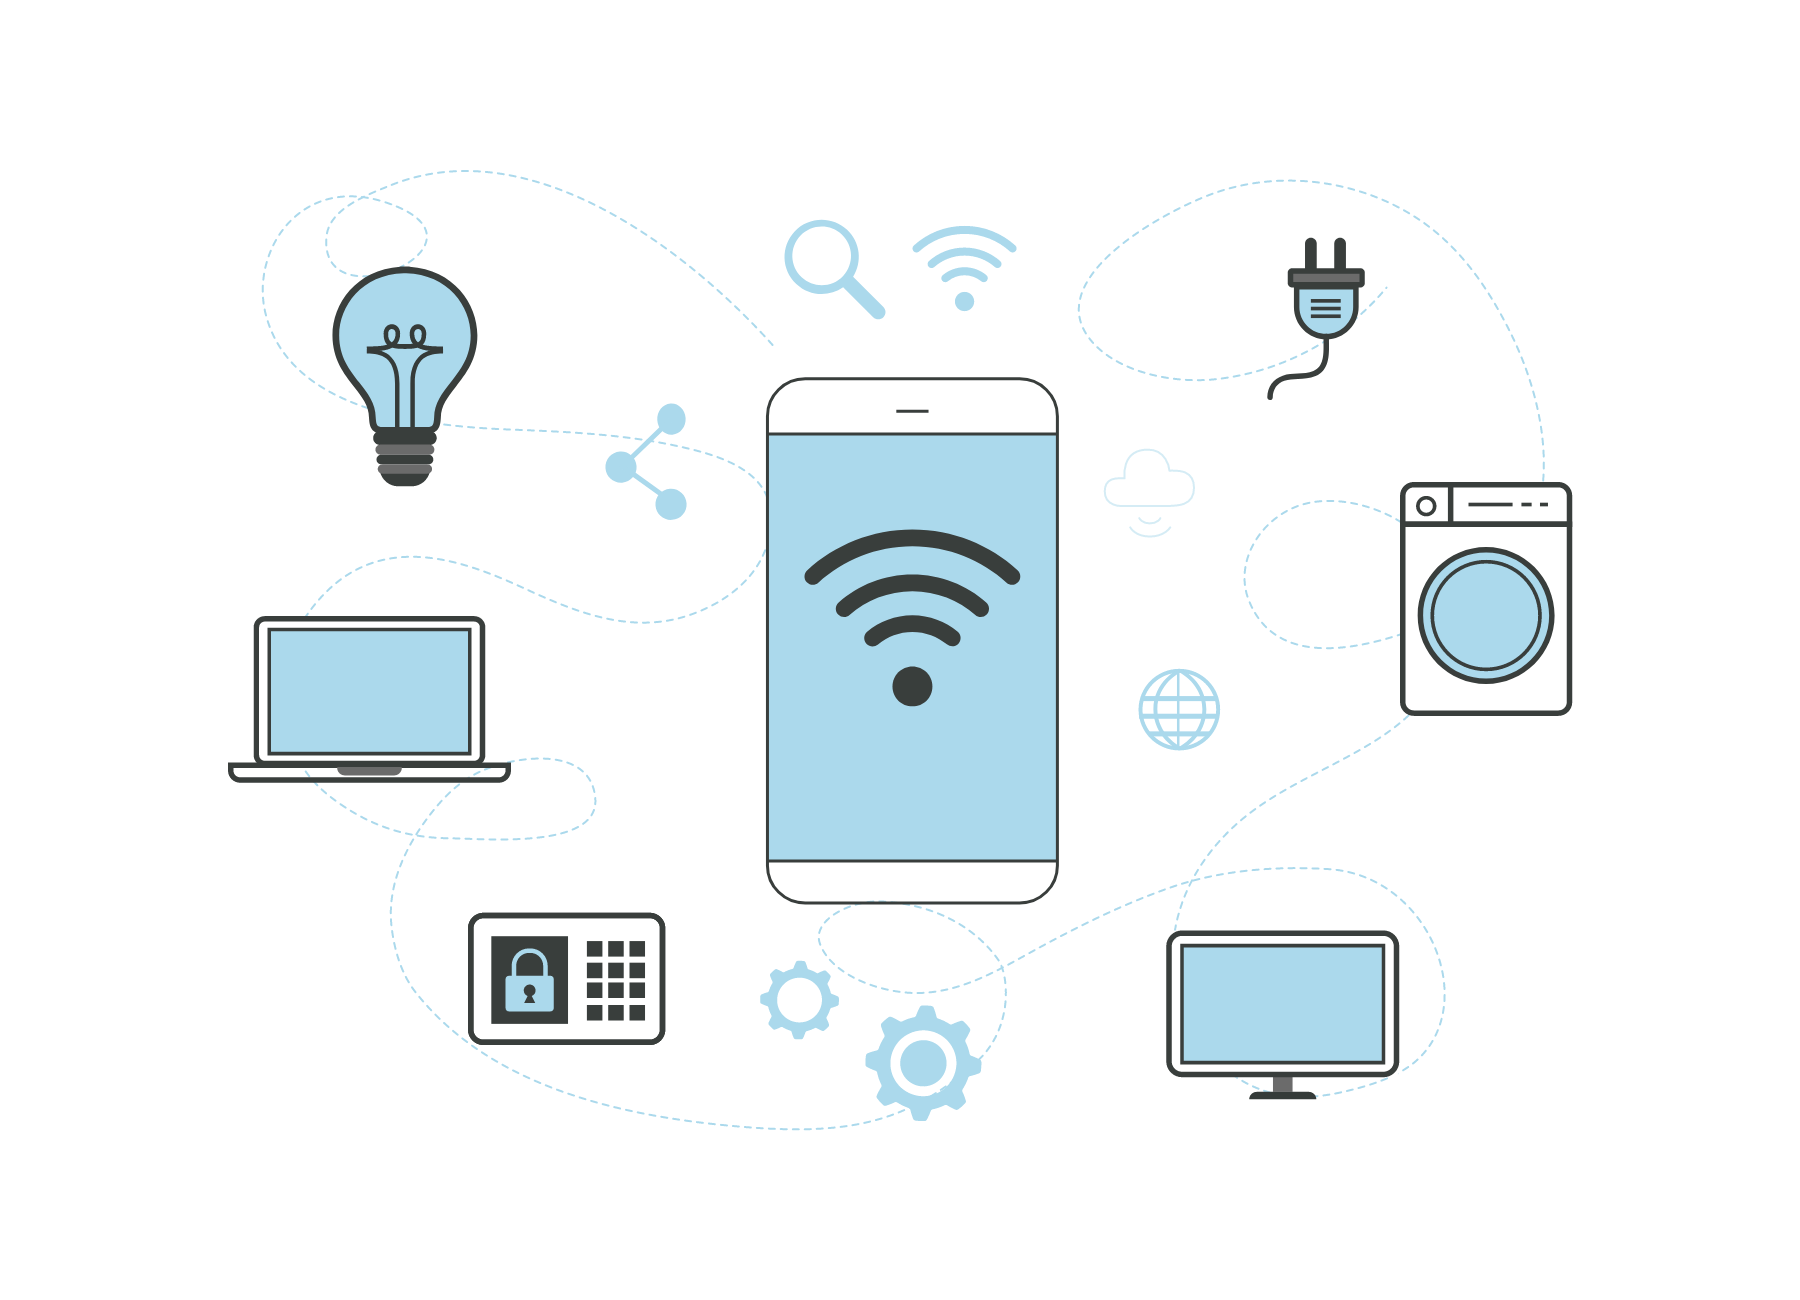 What is the role of Android in IoT